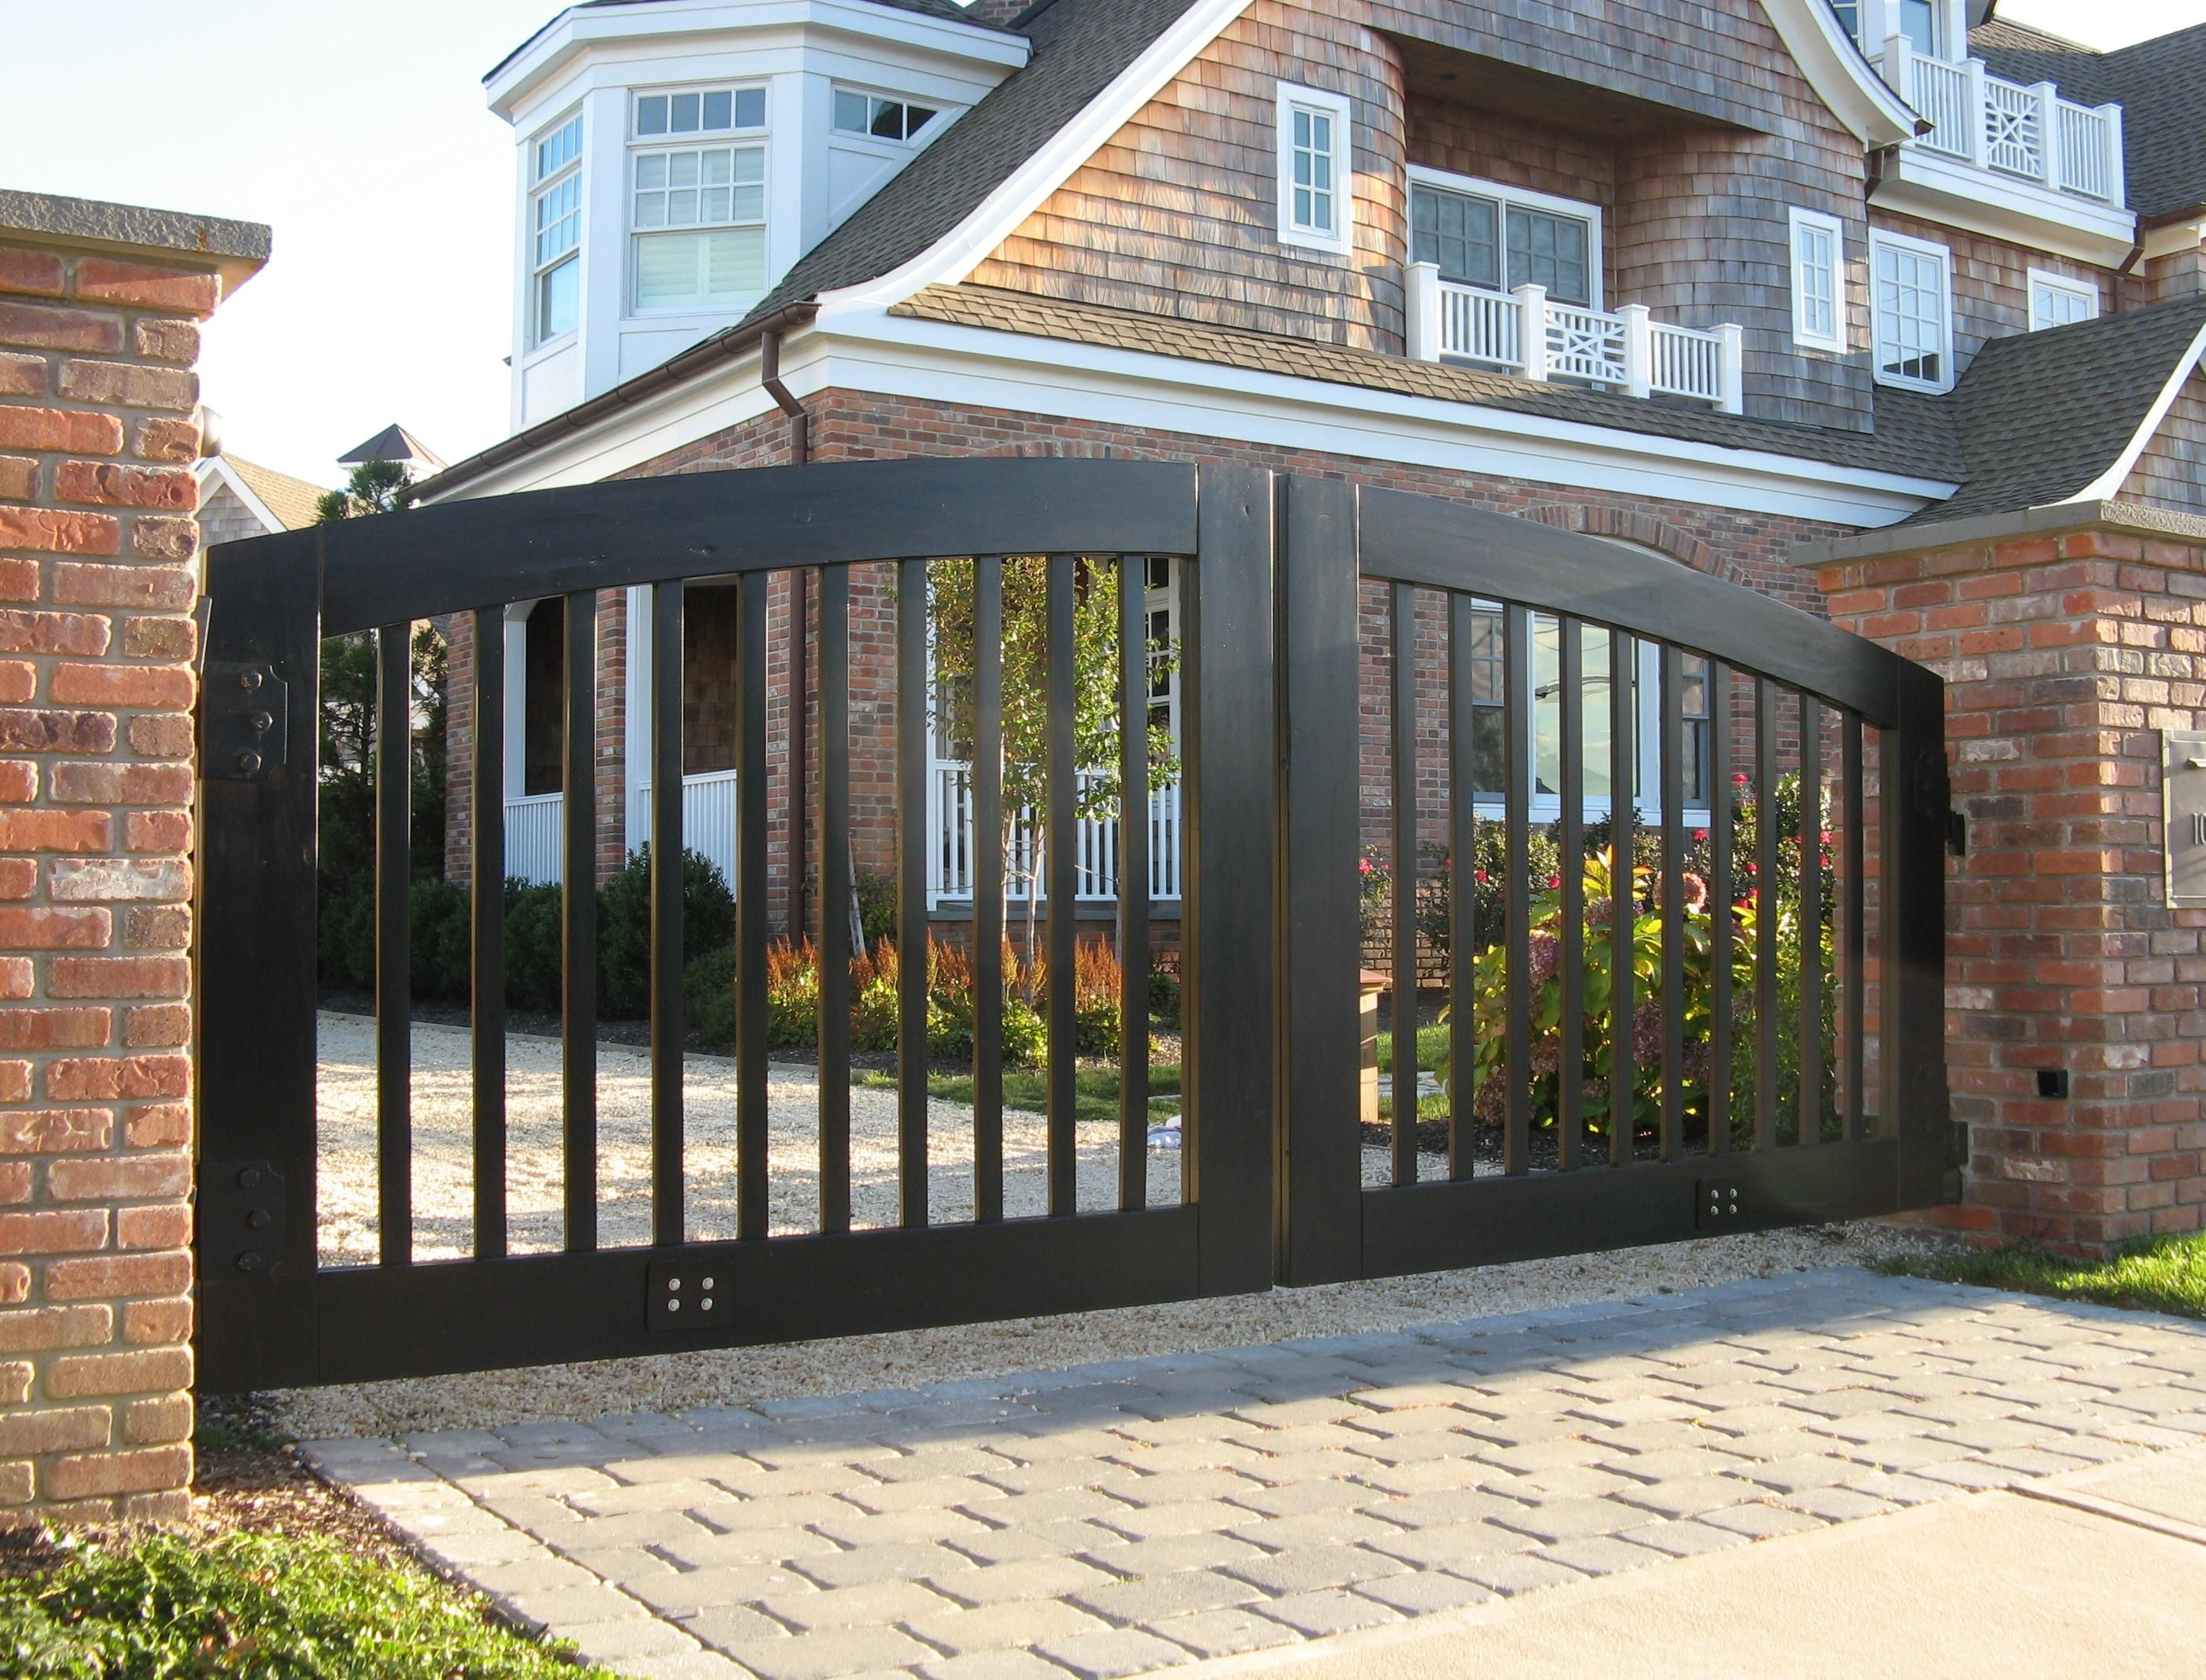 Witching Black Color Wooden Convex Shape Gate And Combine With White Color  Bricks Stone Driveway Also Bricks Fences With Wooden Gate Manufacturers  Plus Wood ...